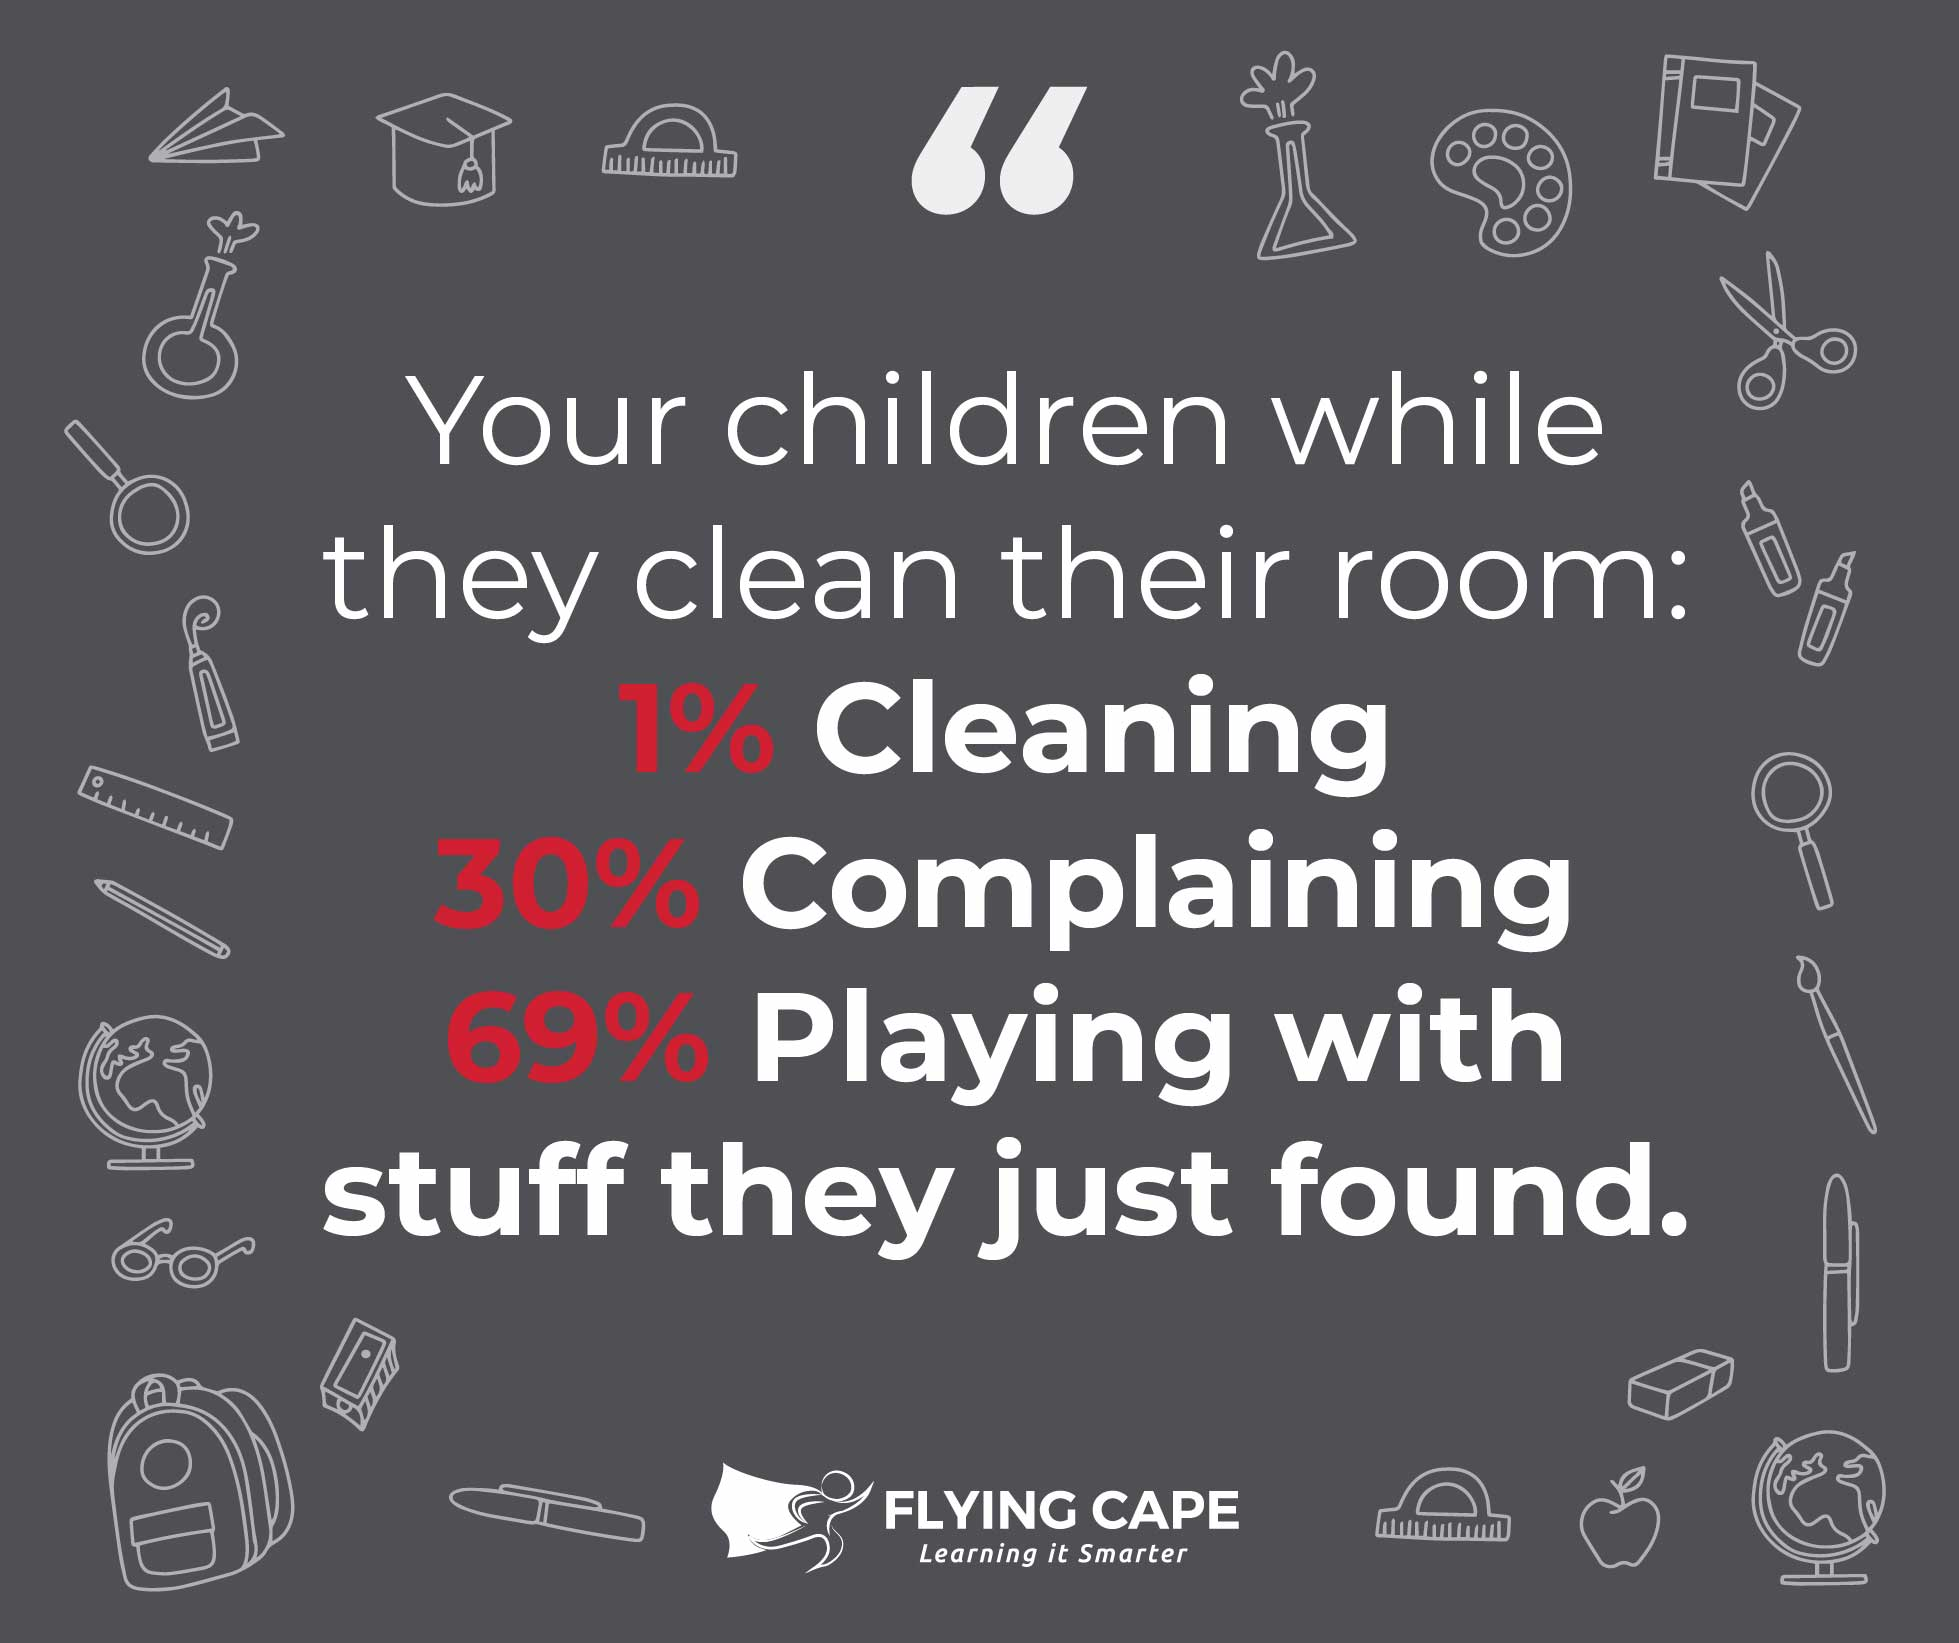 Cleaning room